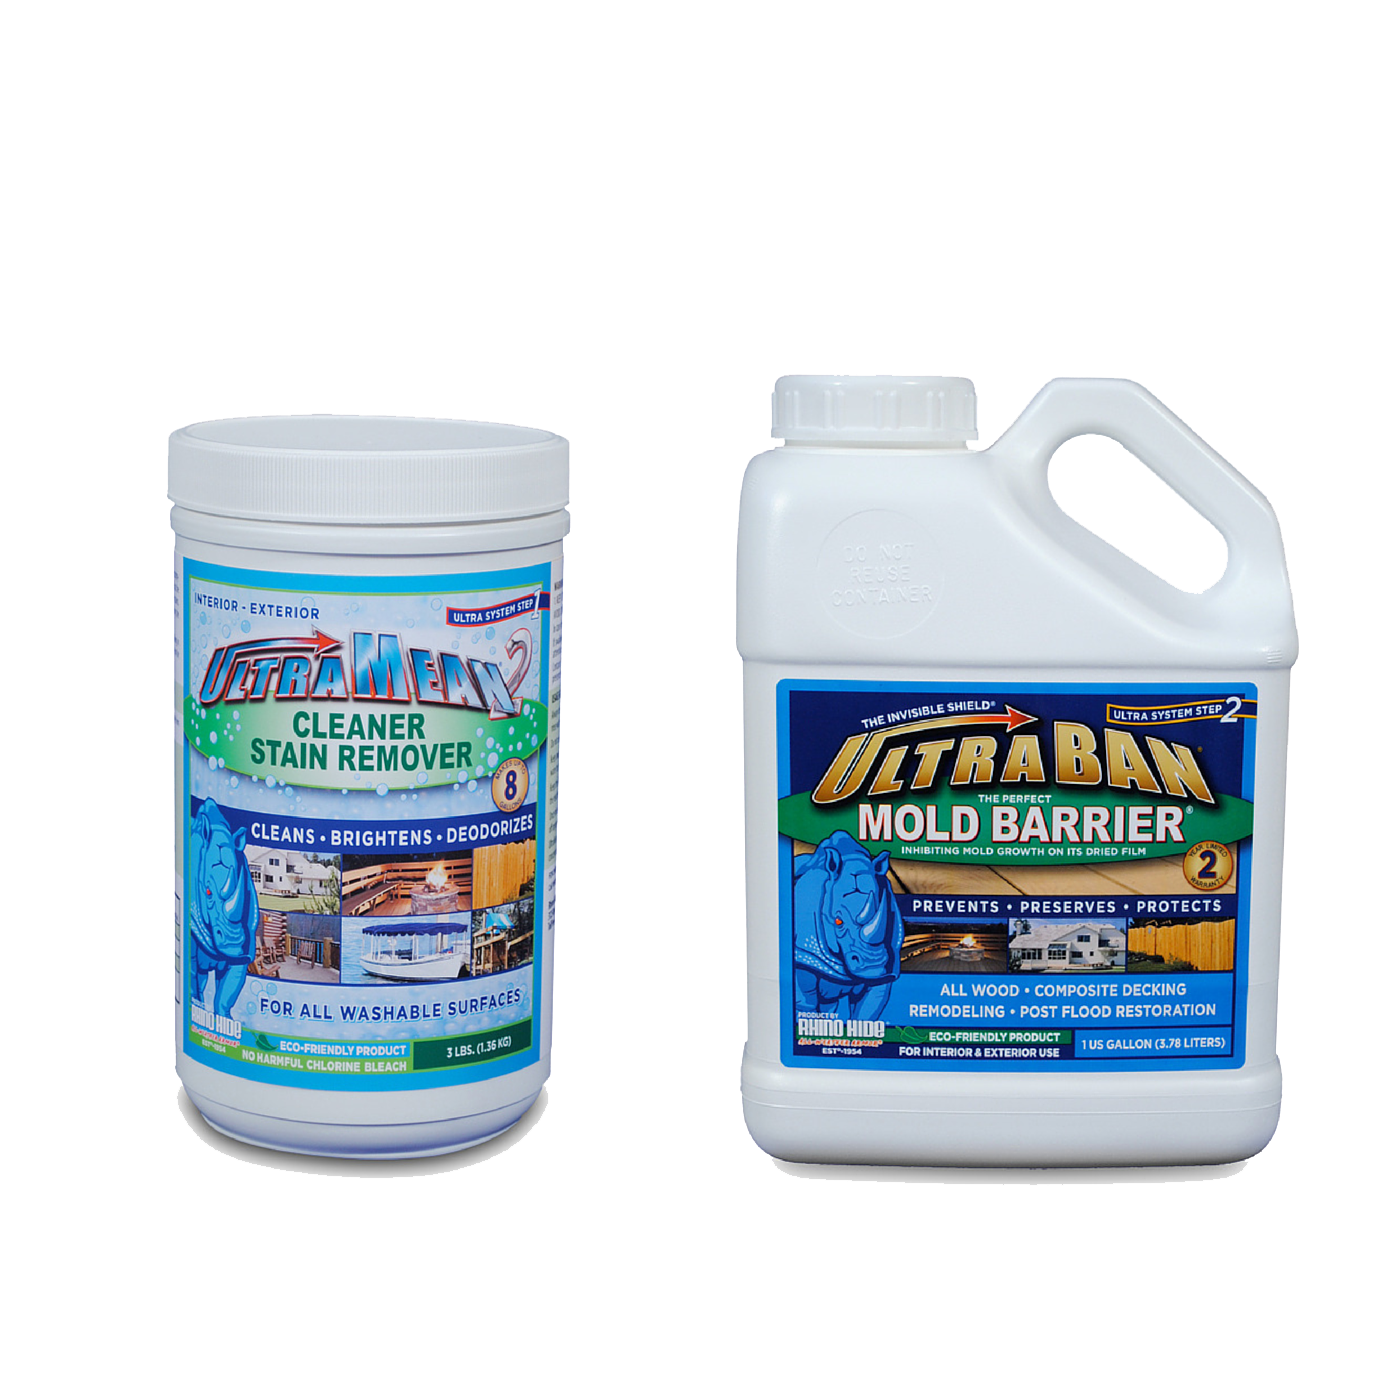 The Ultra System - UltraMean2 and UltraBan are commonly used in the mold remediation and home restoration process to help protect the home from mold.